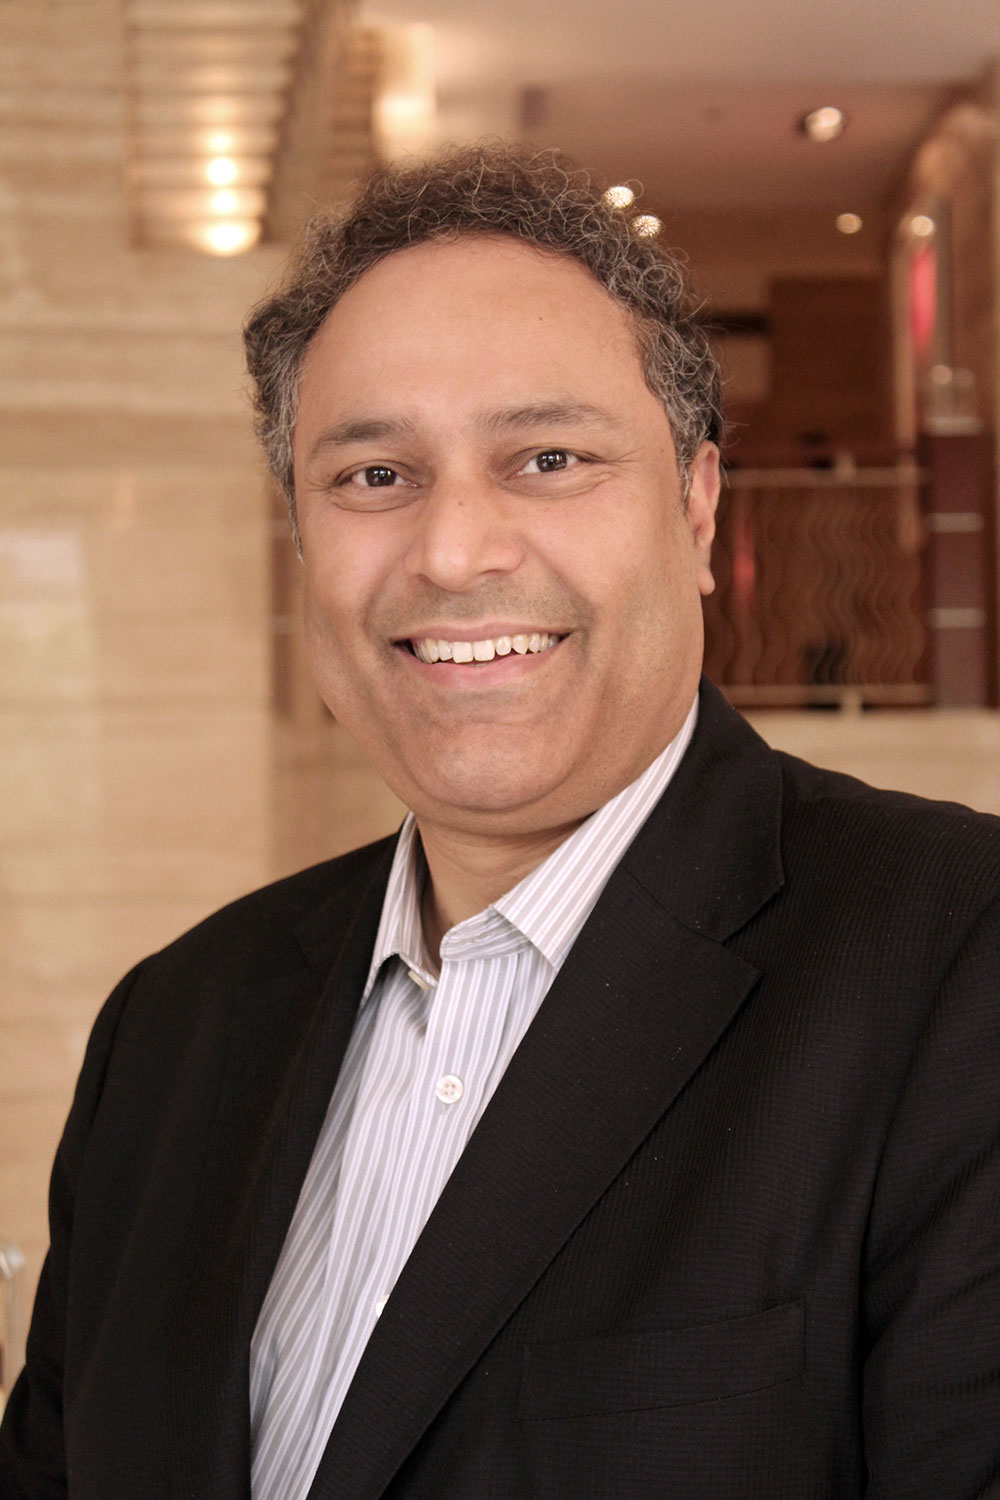 Aseem-Kapoor---General-Manager-Hyatt-Regency-Delhi